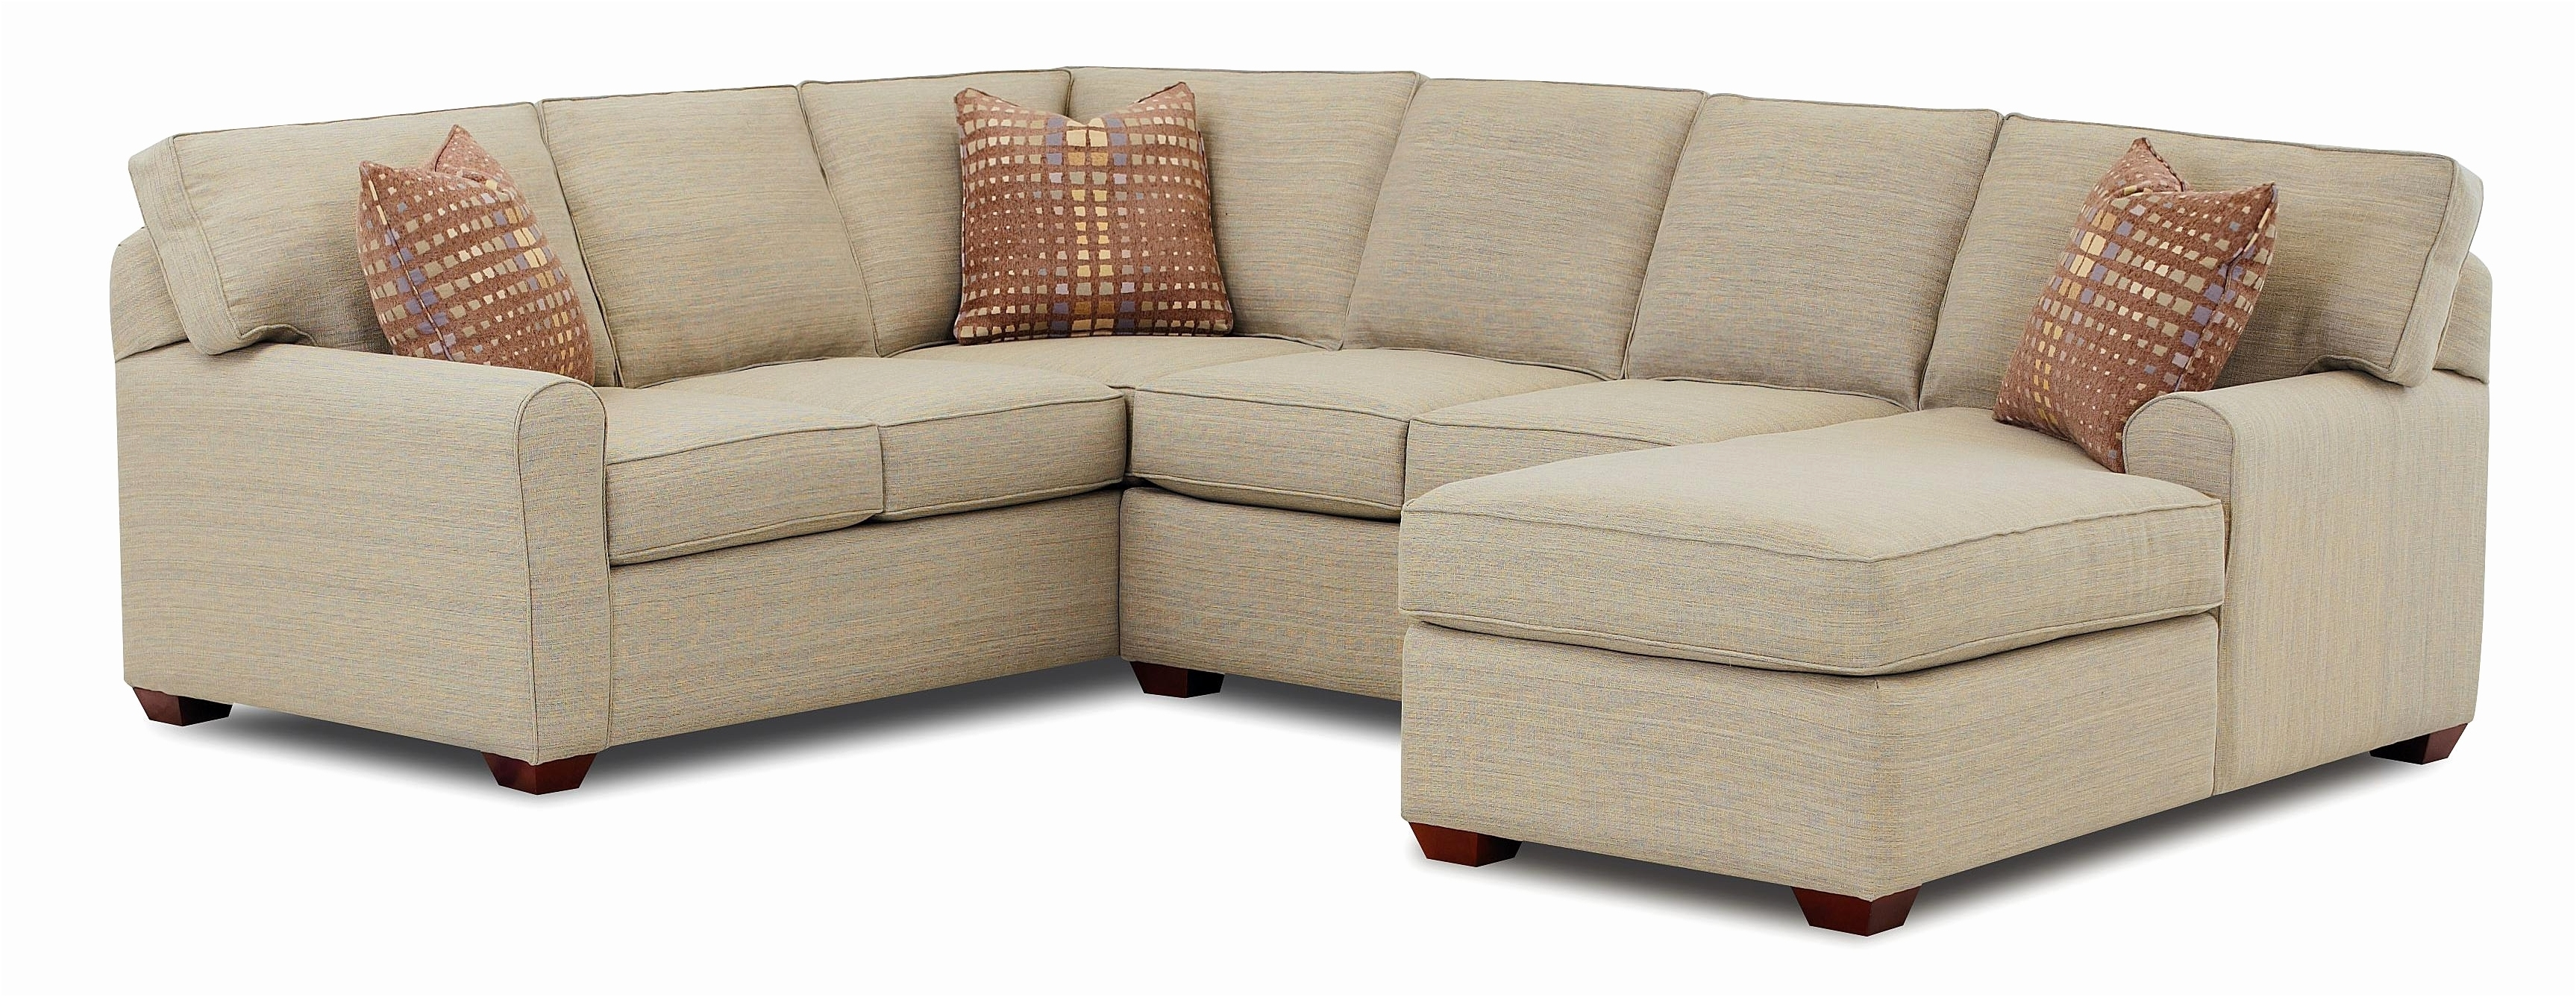 Favorite Lovely Chaise Sectional Sofa Beautiful – Sofa Furnitures Intended For Chaise Sofa Sectionals (View 7 of 15)